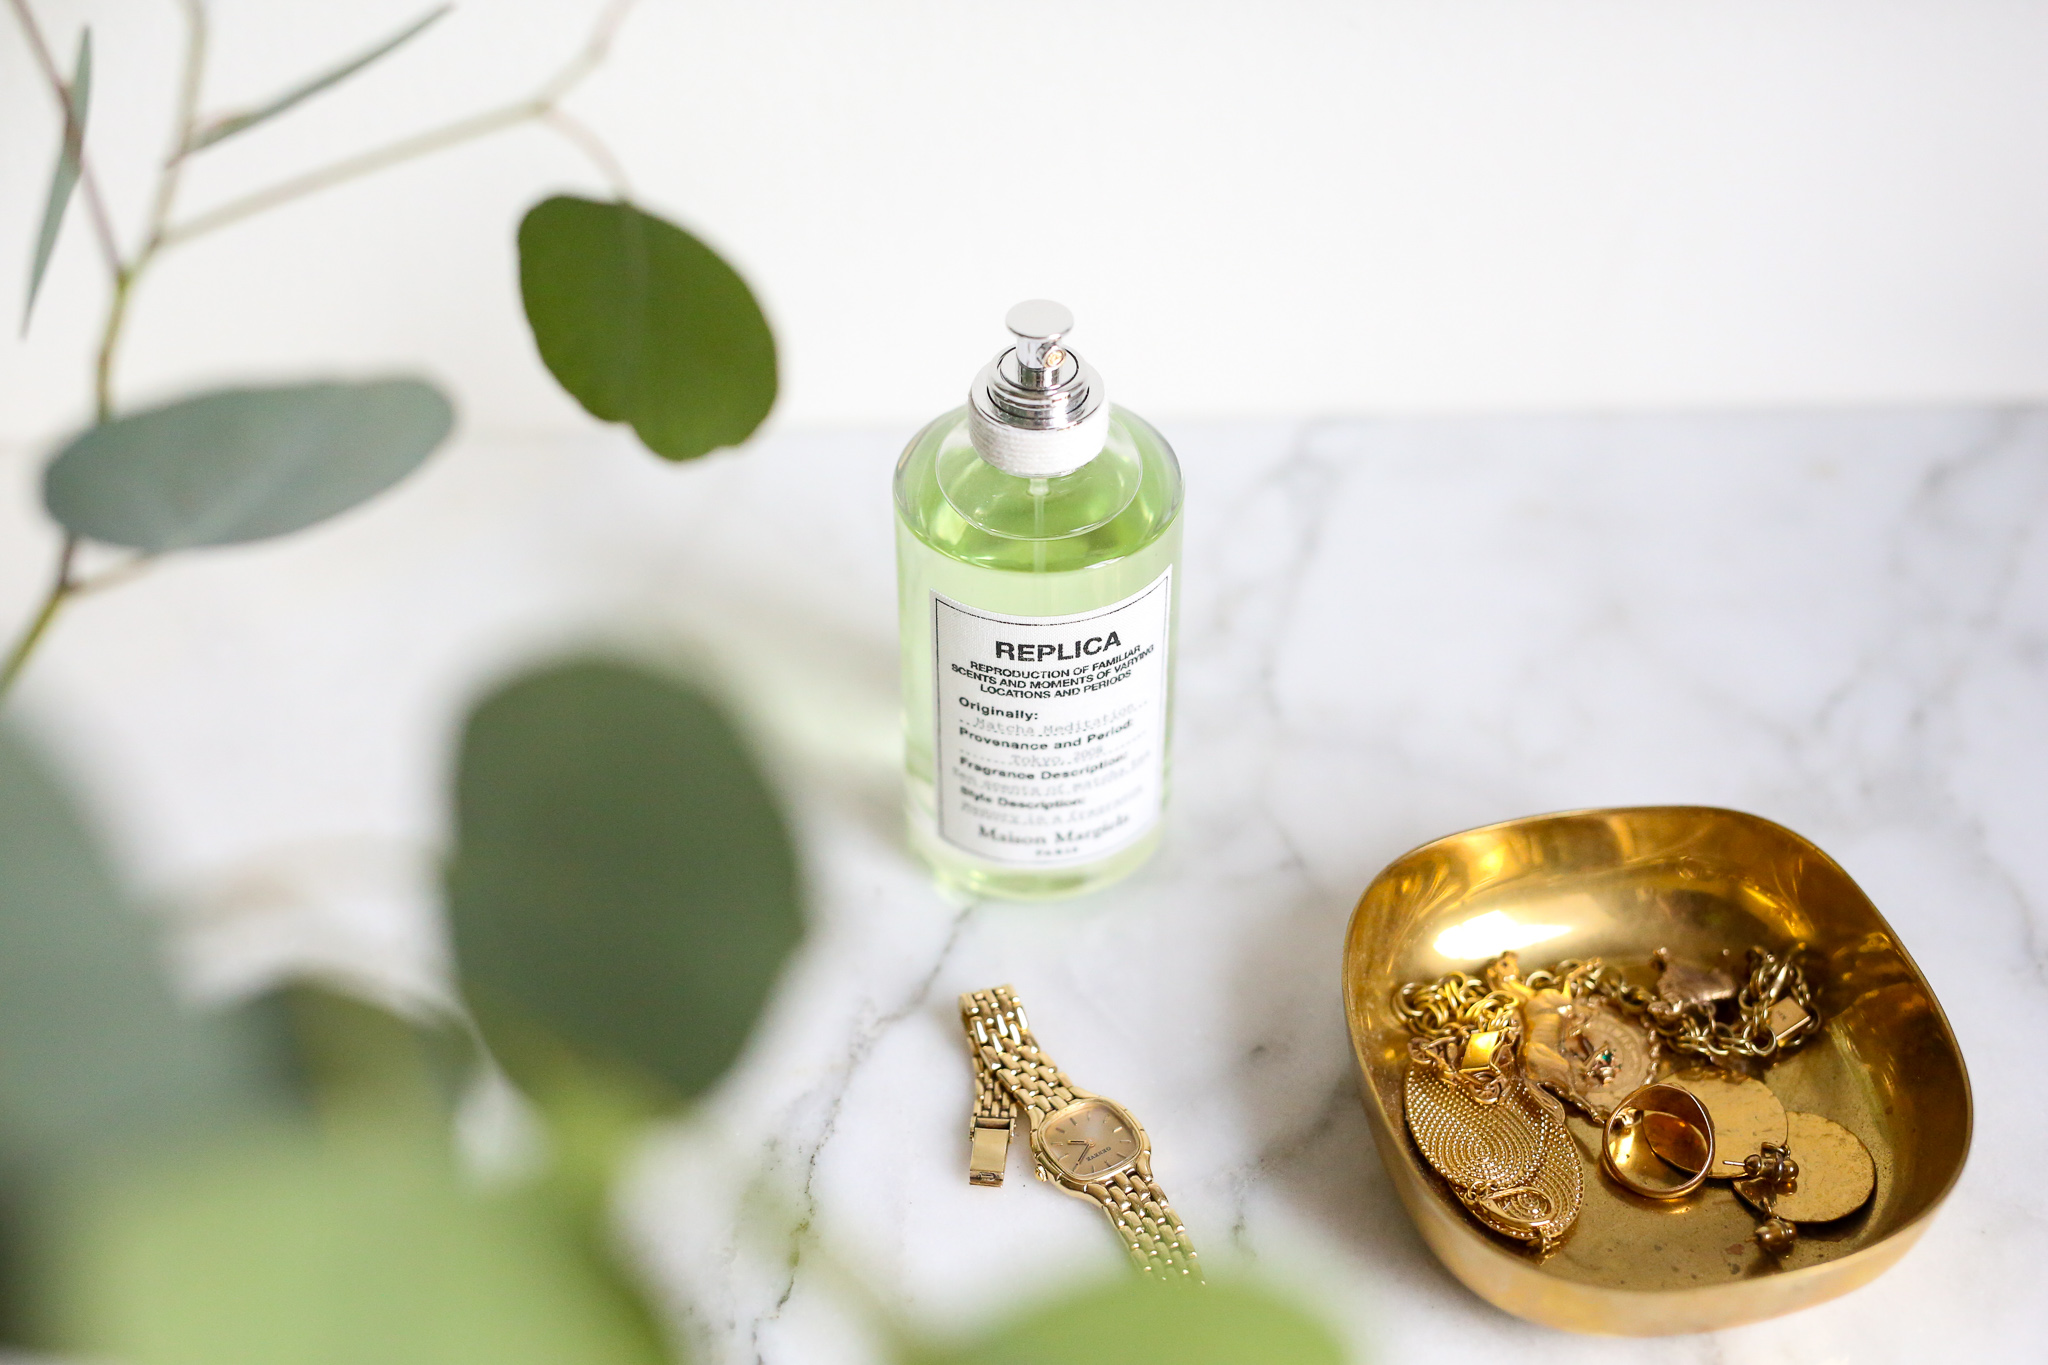 bottle of Matcha Meditation by REBPLIC perfume on marble counter with green leaves, gold watch, and gold tray filled with gold jewelry